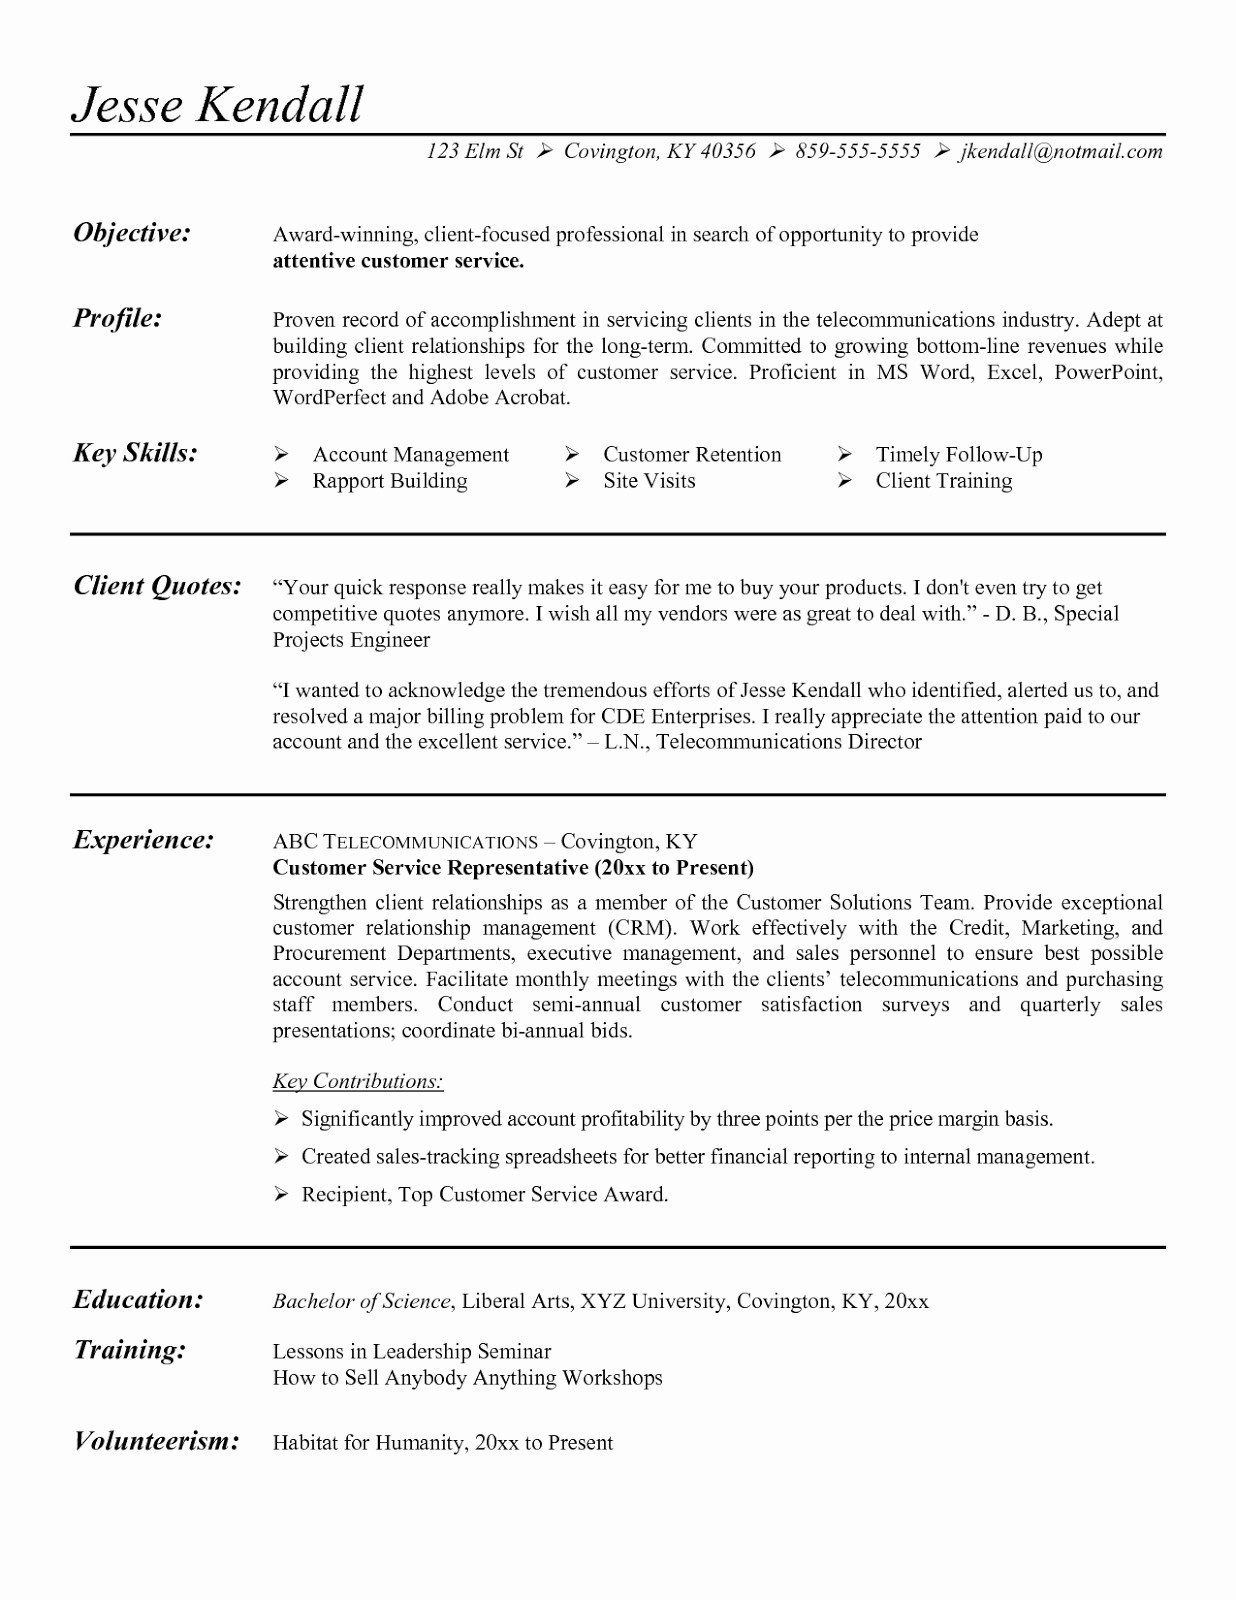 diesel mechanic resume template Collection-Mechanic Job Description For Resume Valid Veterinary Technician Resume Lovely Pharmacy Tech Resume Template 12-j